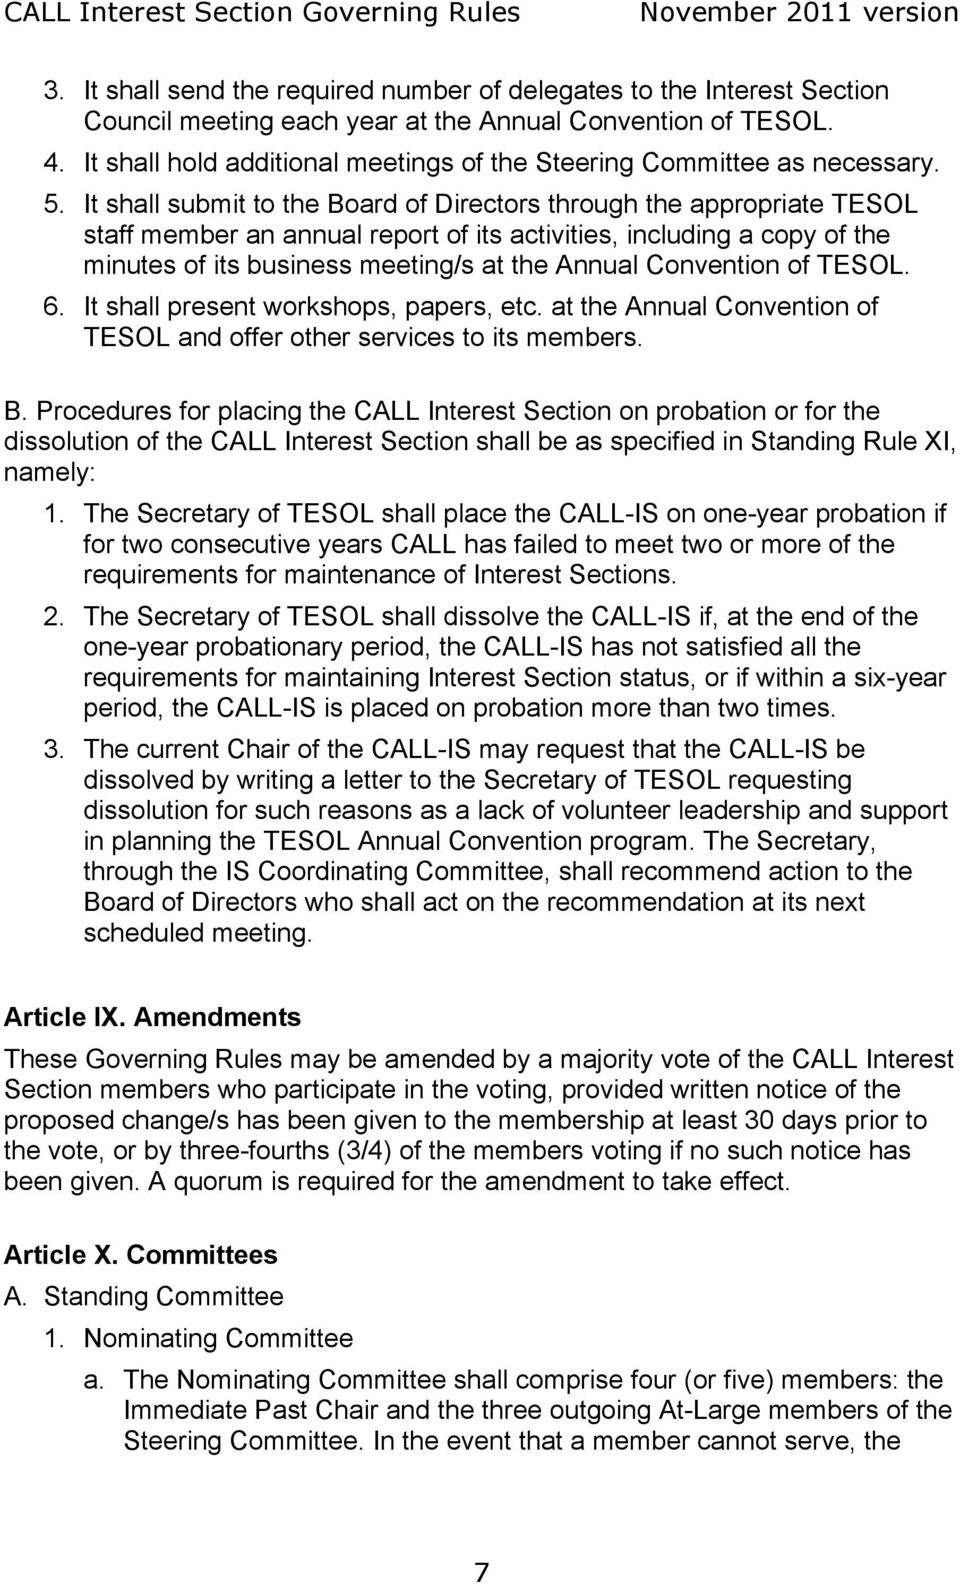 It shall submit to the Board of Directors through the appropriate TESOL staff member an annual report of its activities, including a copy of the minutes of its business meeting/s at the Annual